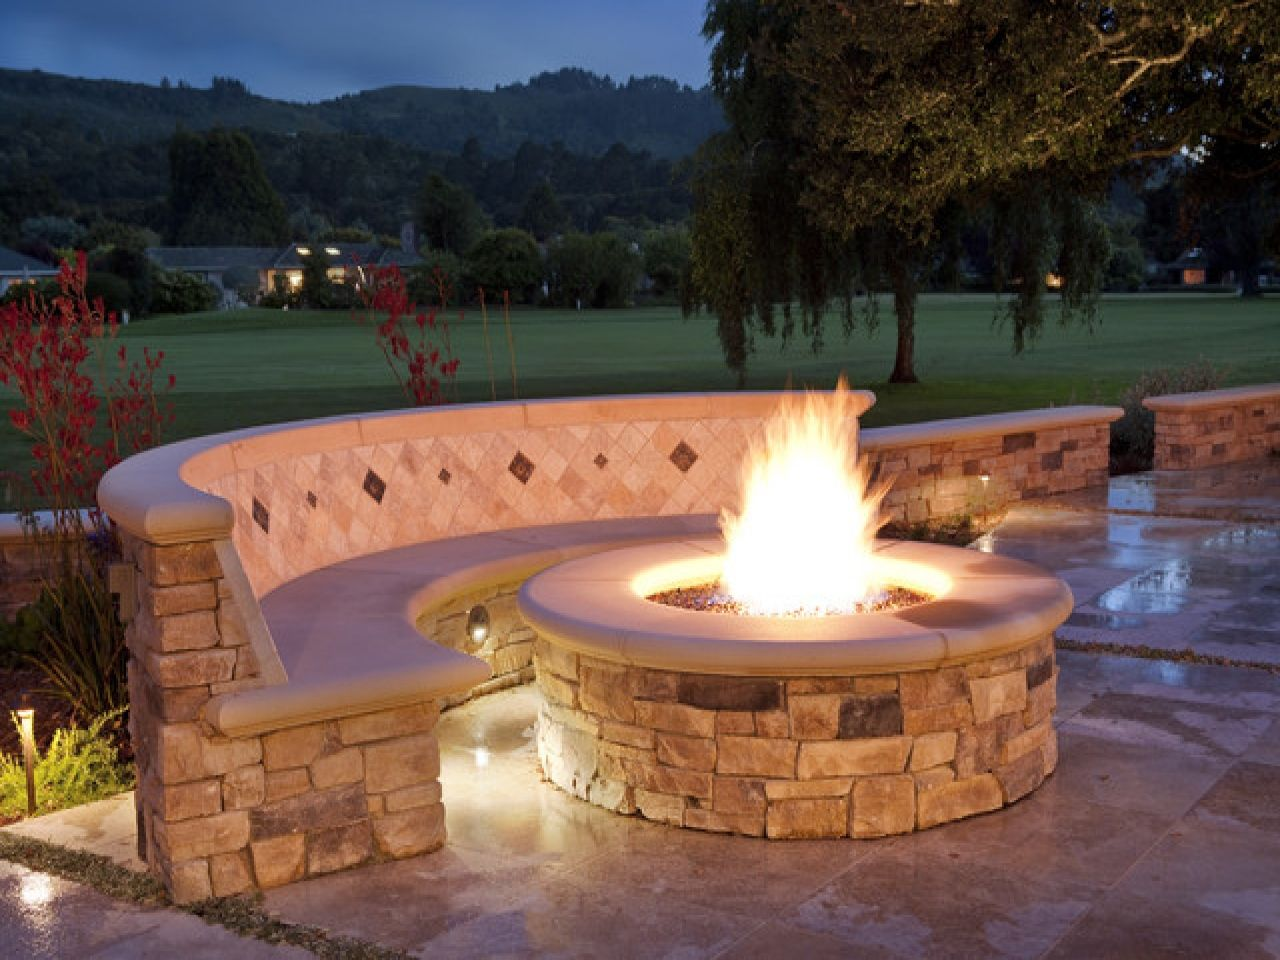 fire pit patio sets outdoor fire pit patio design ideas fire pit patio sets outdoor fire - Patio Design Ideas With Fire Pits